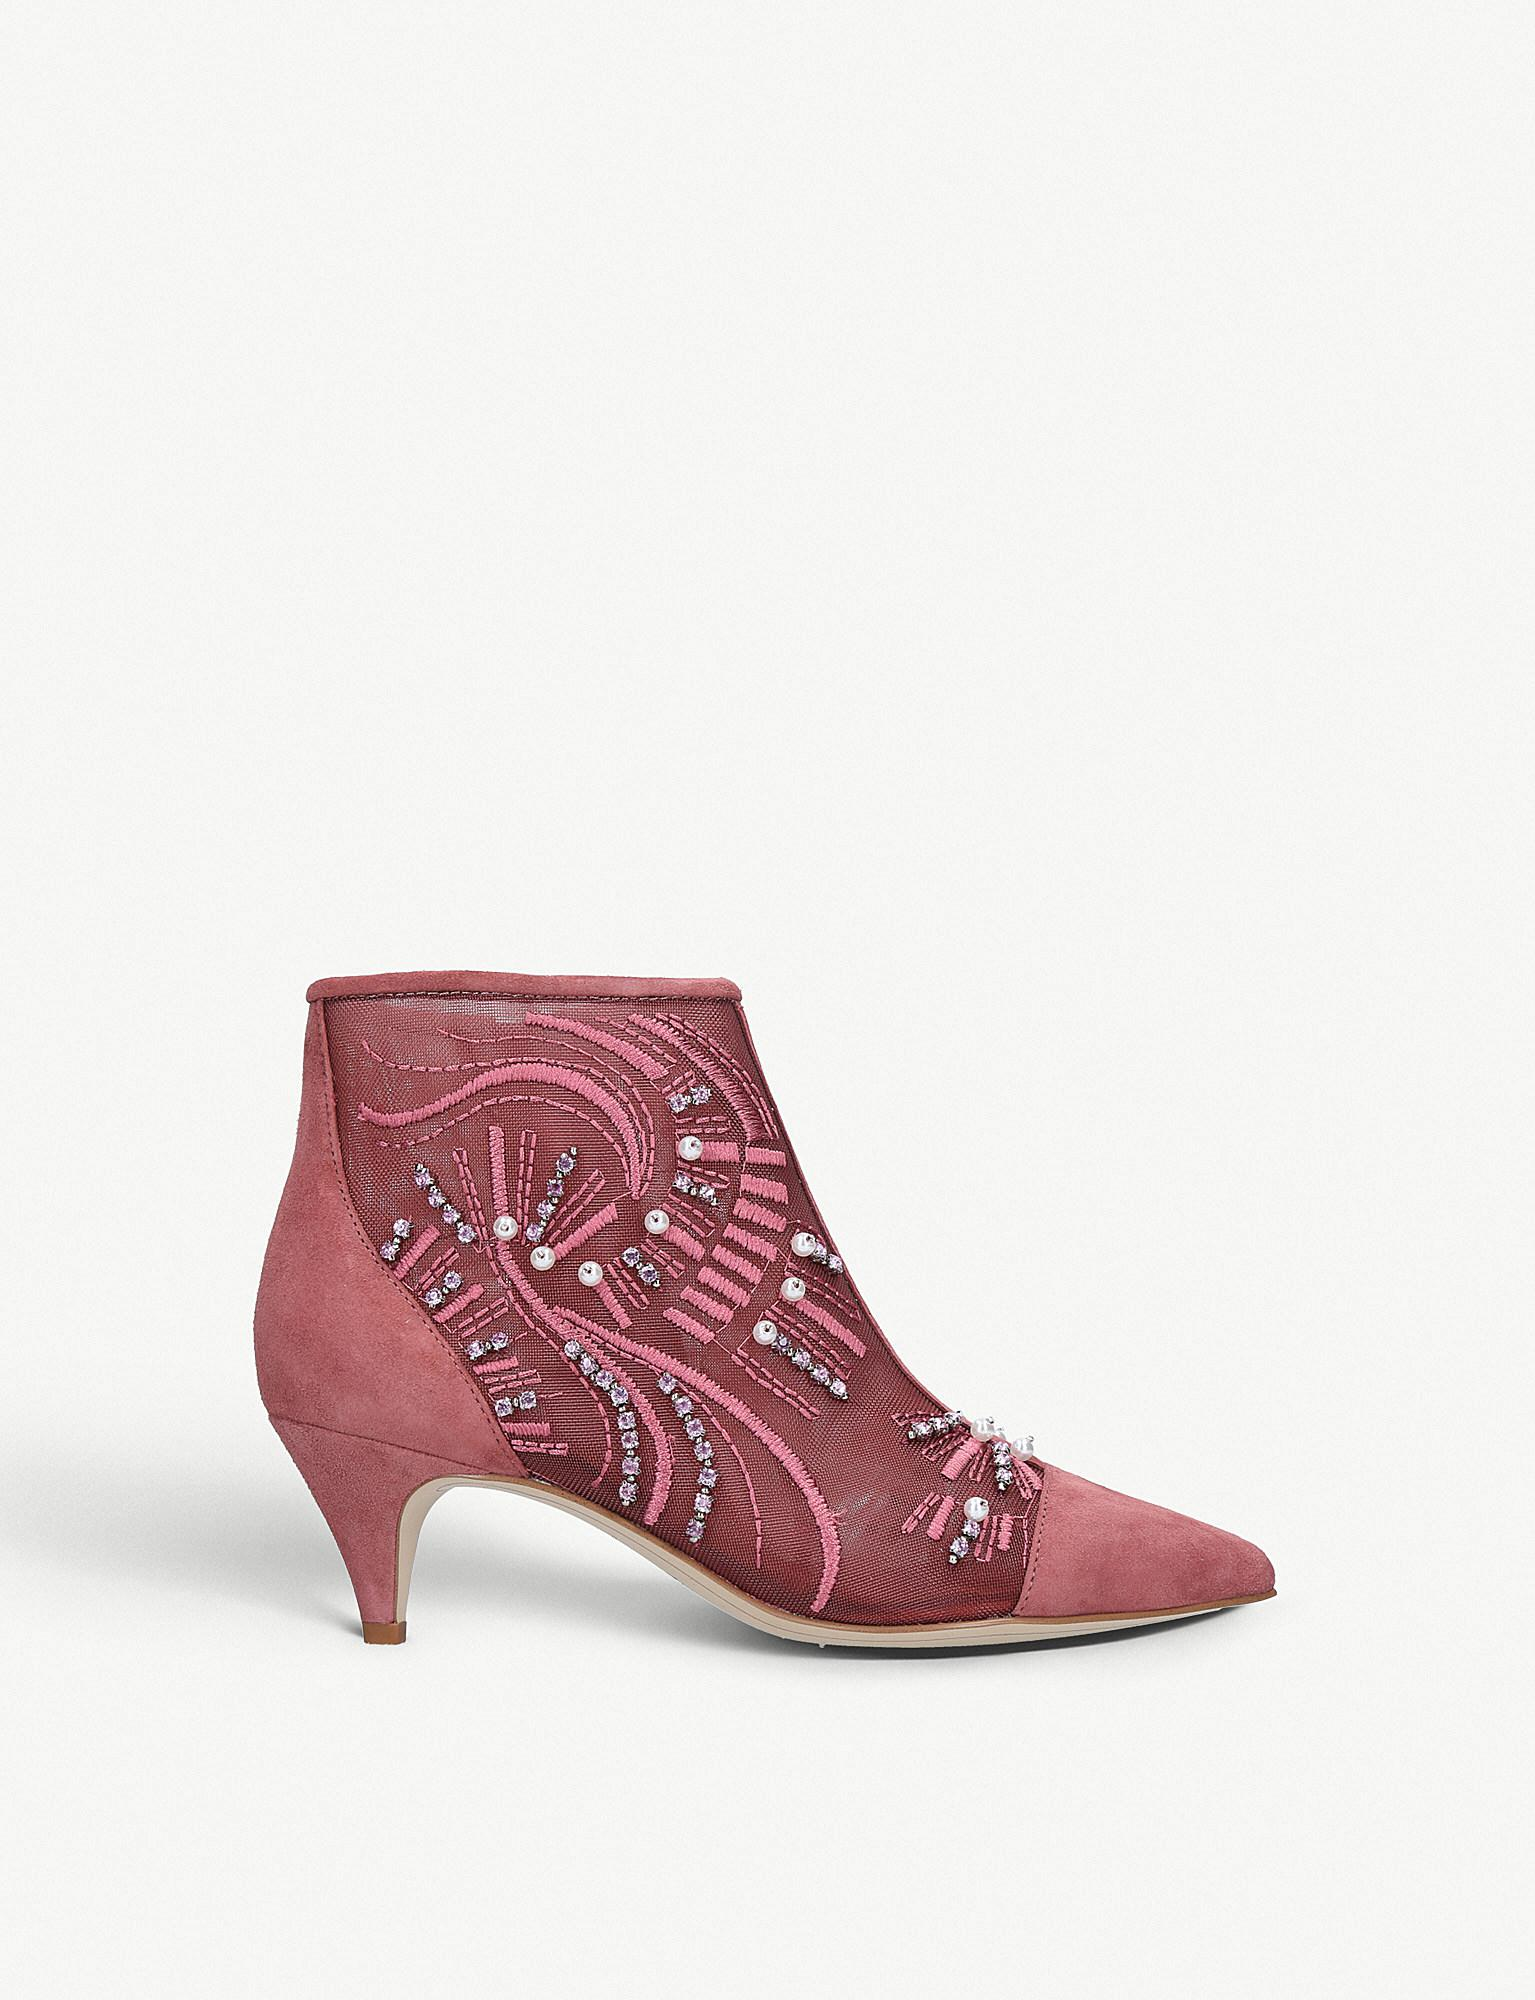 501a4afb4b4d37 Lyst - Sam Edelman Embellished-ankle Boots in Pink